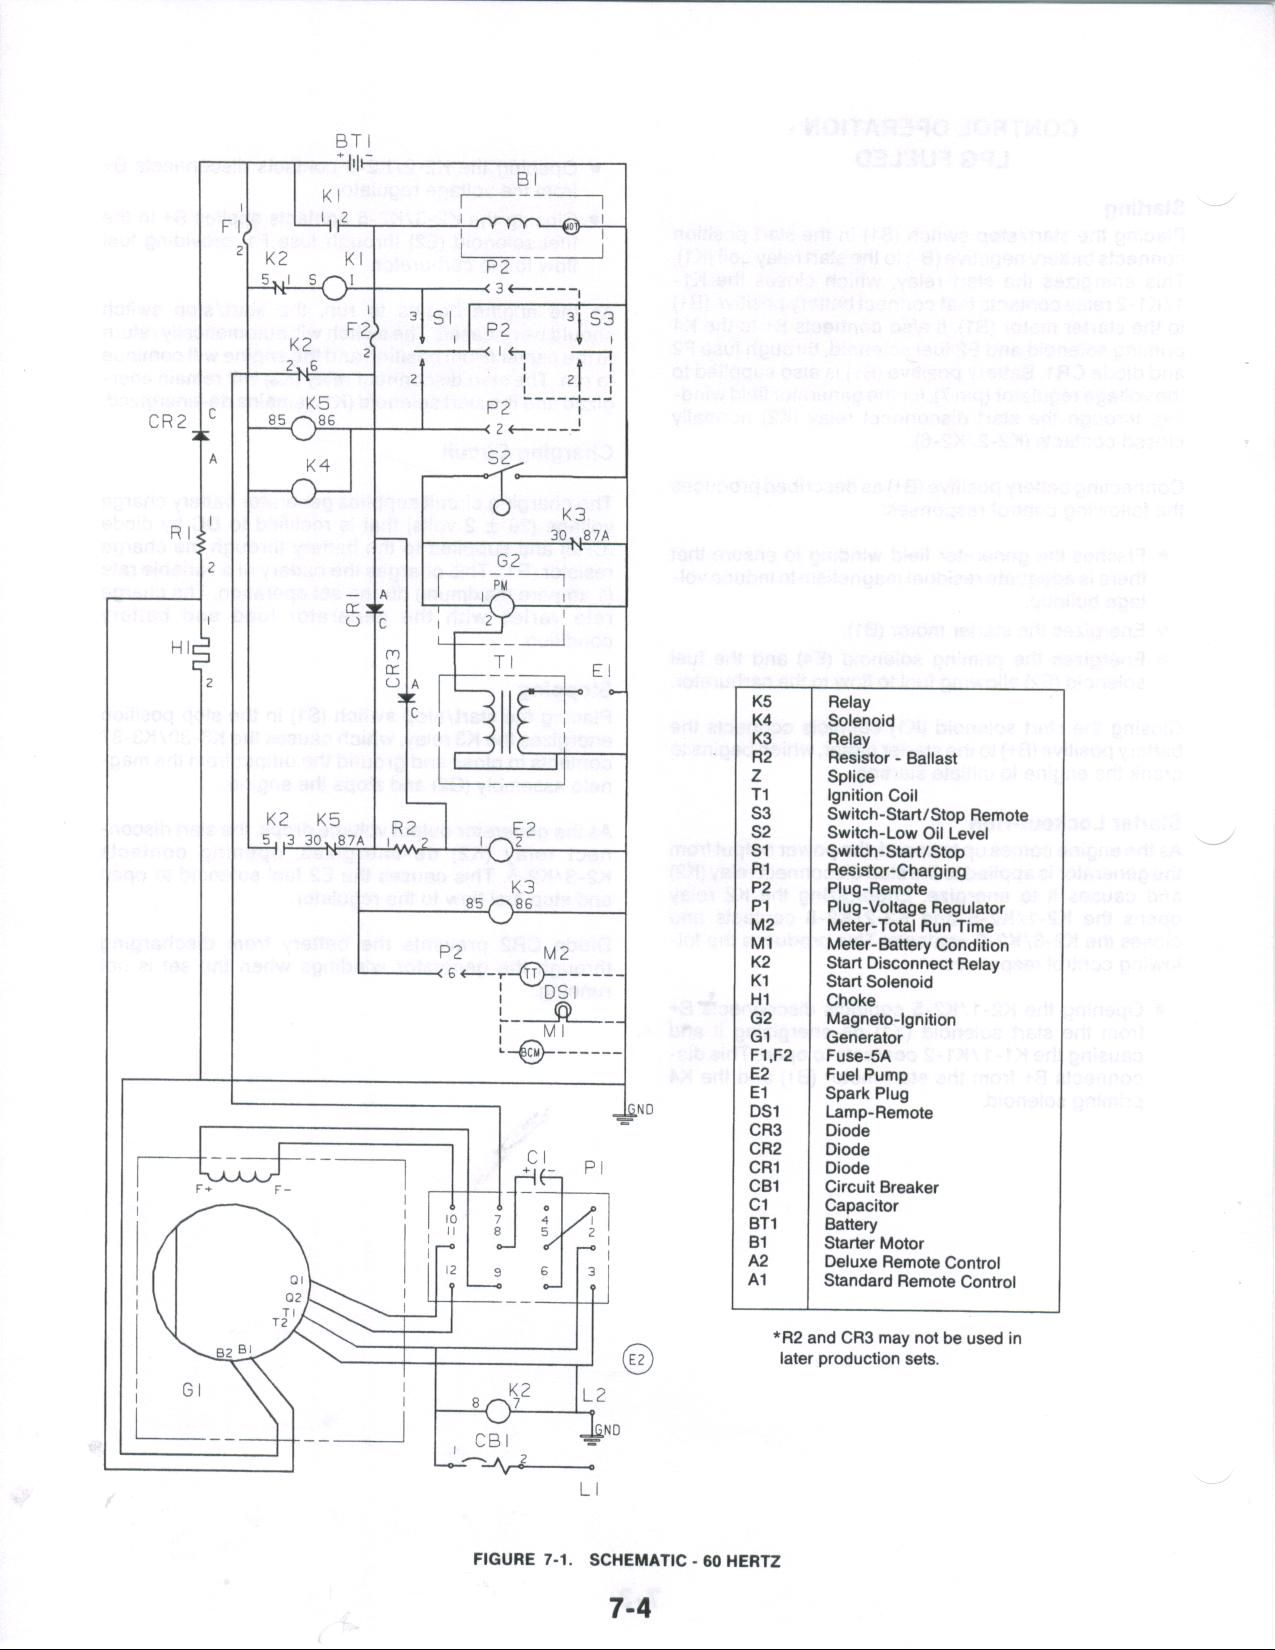 onan generator wiring diagram nest thermostat dual fuel 4 remote get free image